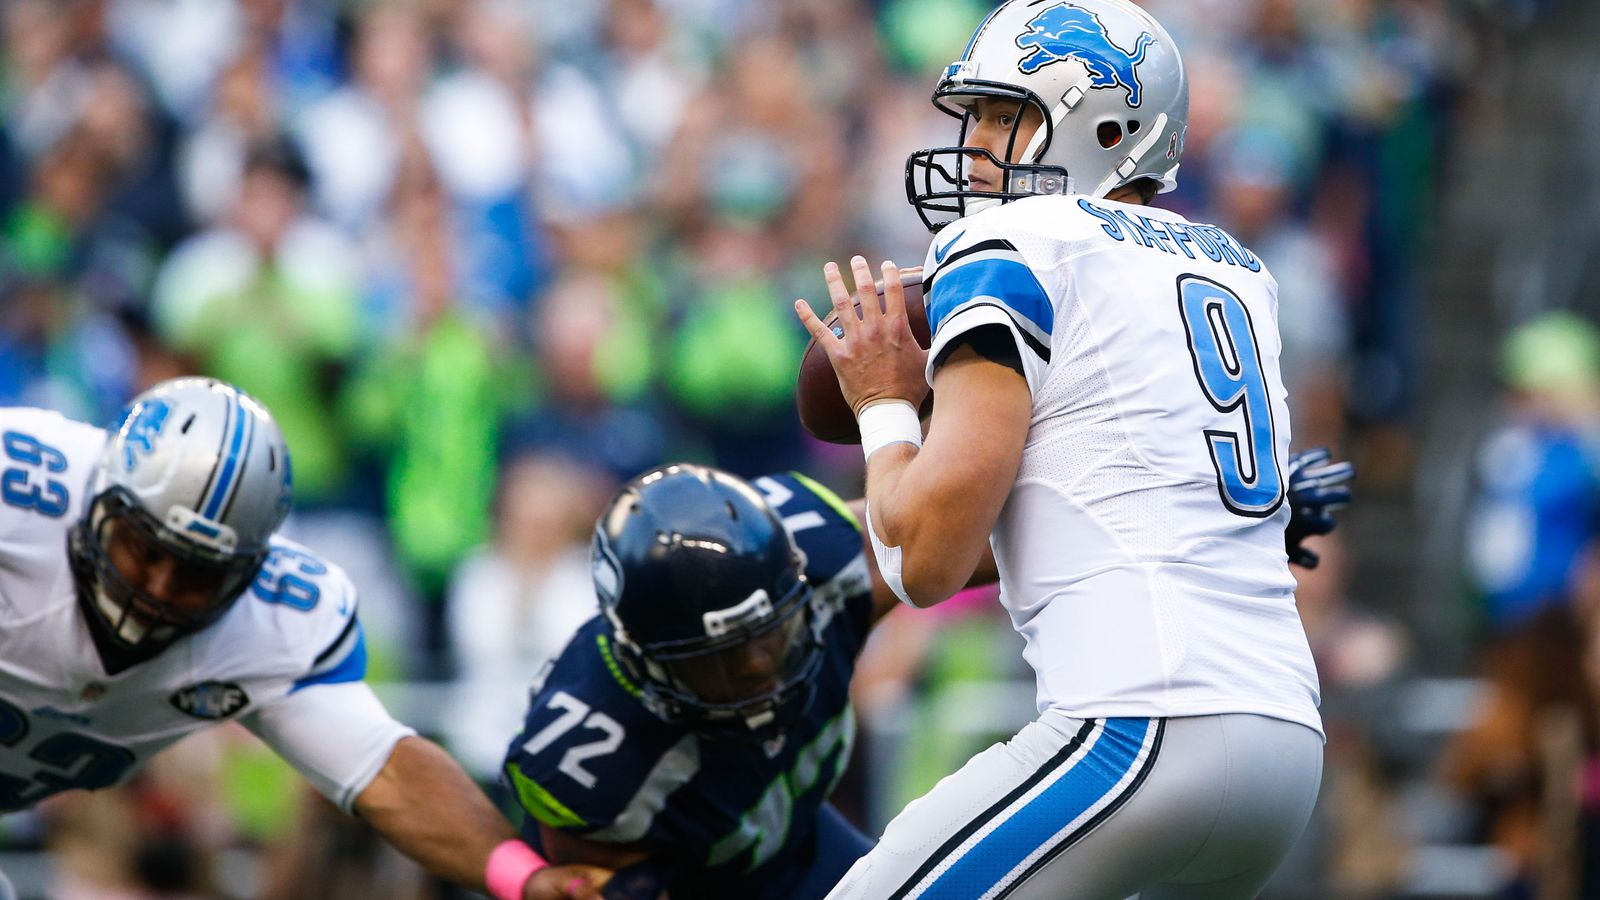 Check out the Seattle Seahawks schedule See scores results and the upcoming game schedule at FOX Sports